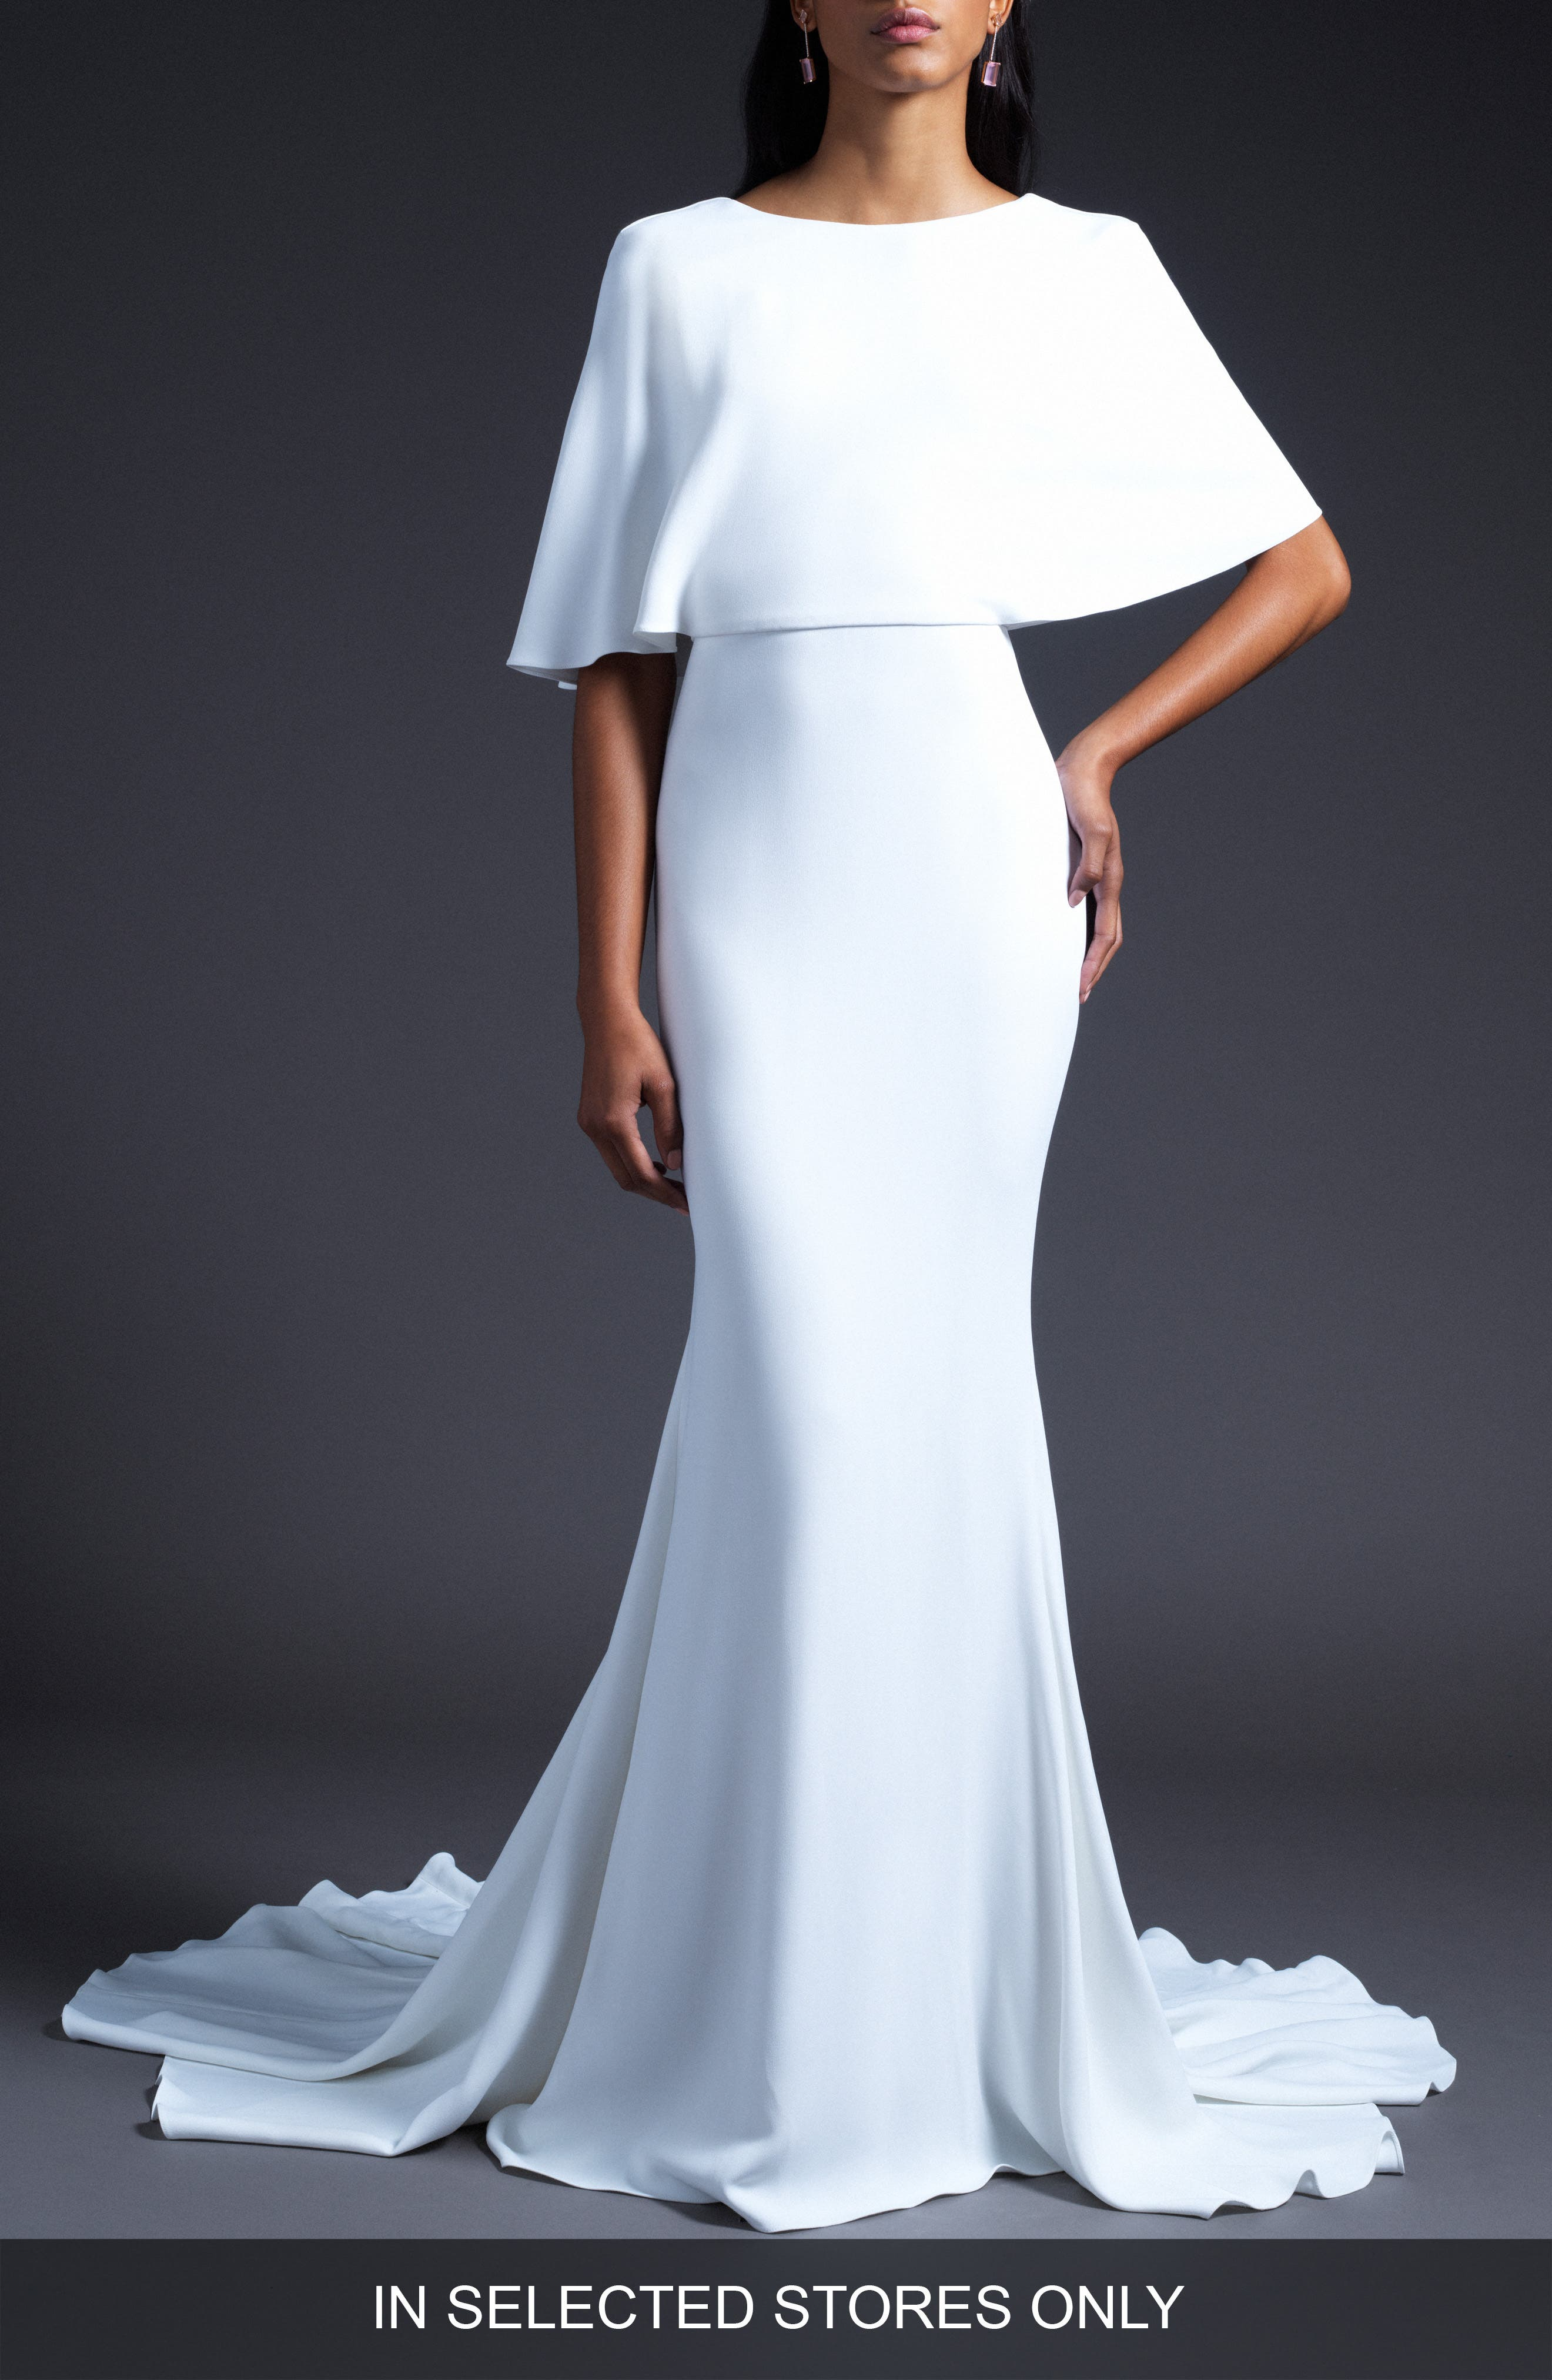 Cushnie Open Back Cape Shoulder Wedding Dress, Size IN STORE ONLY - White